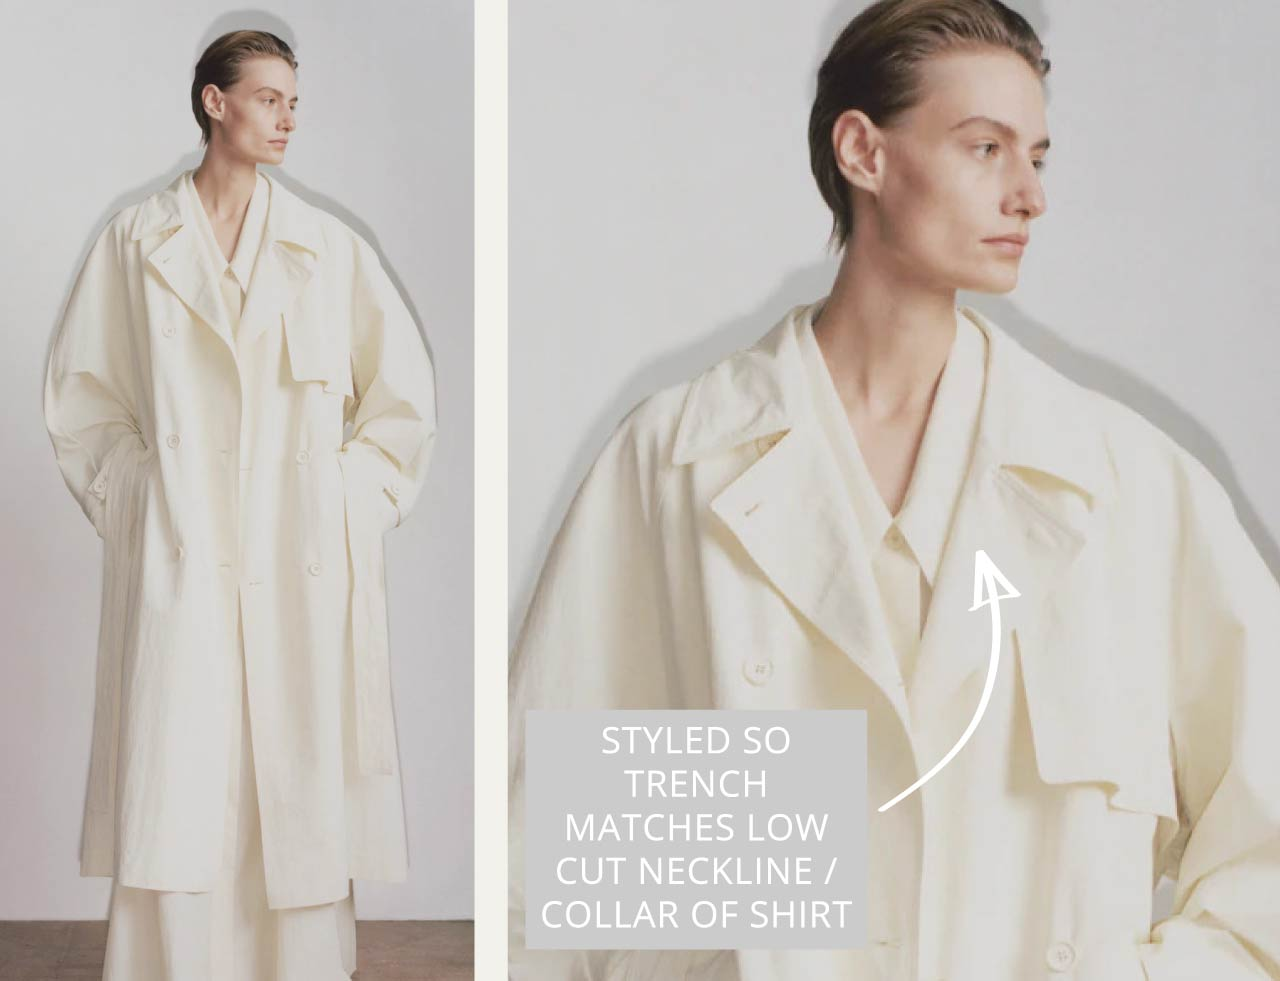 Slight Dropped Shoulders at The Row | The Cutting Class. Low cut neckline / collar on shirt and trench Pre Fall 2020.